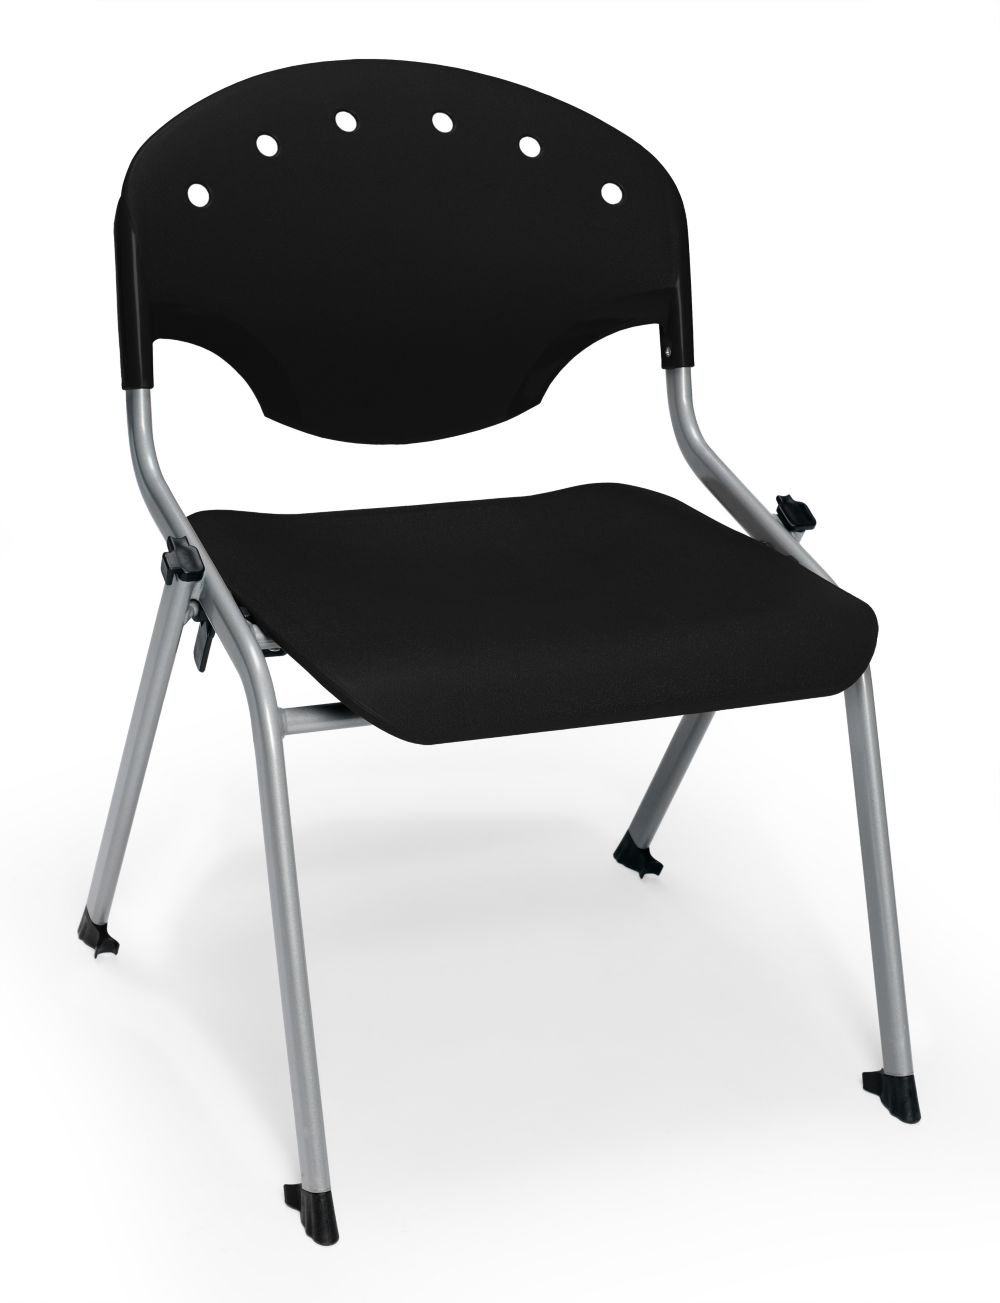 Student Chair 16''H Seat Silver/Black Dimensions: 22.25''W x 23.50''D x 29.75''H Weight: 11 lbs